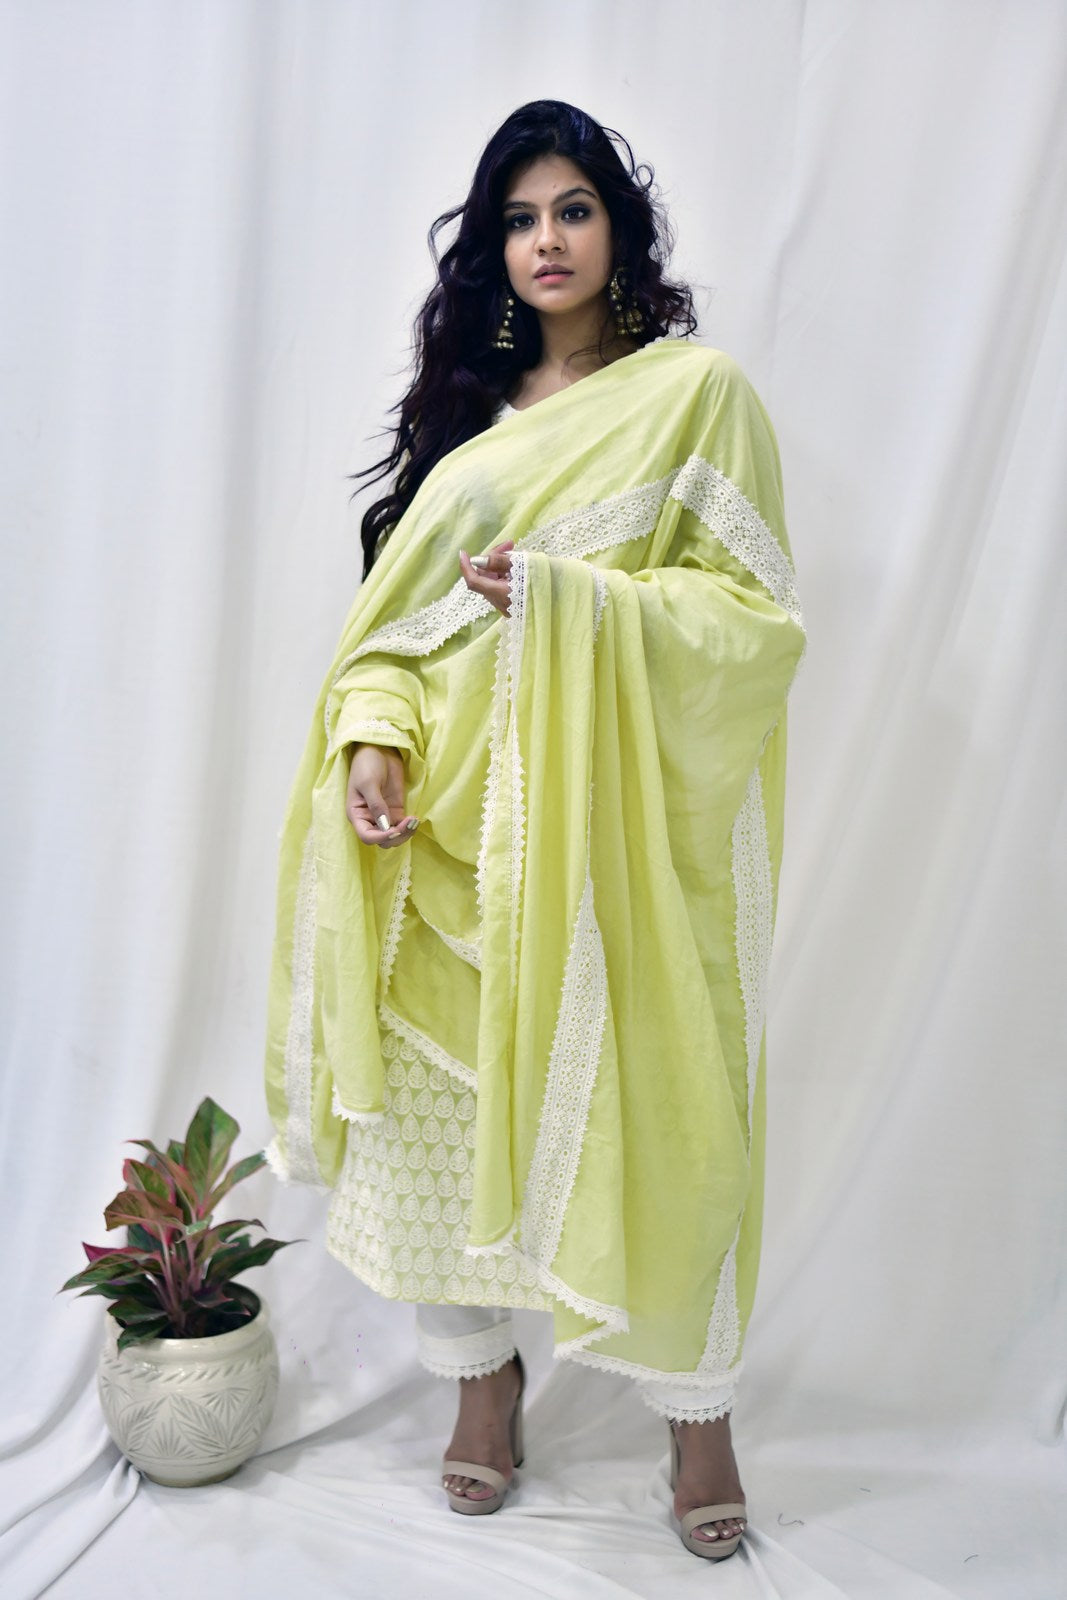 Lemon Yellow Cotton Dupatta - label shreya gupta